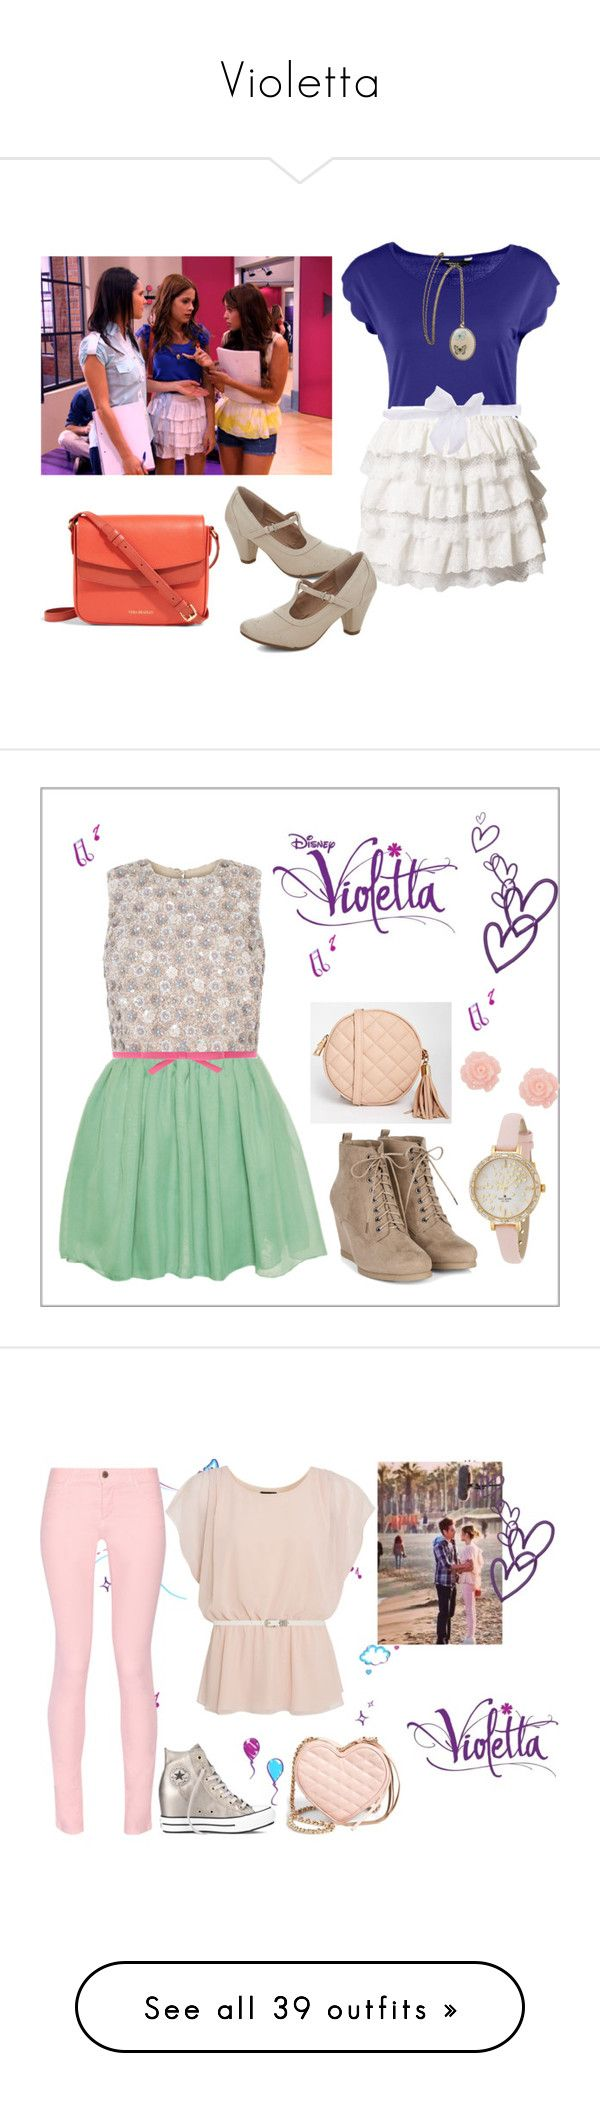 """""""Violetta"""" by stylewiktoria ❤ liked on Polyvore featuring Dorothy Perkins, Molly Bracken, Chelsea Crew, Vera Bradley, Hearts & Bows, Kate Spade, White House Black Market, ASOS, ANNA and Ultimo"""